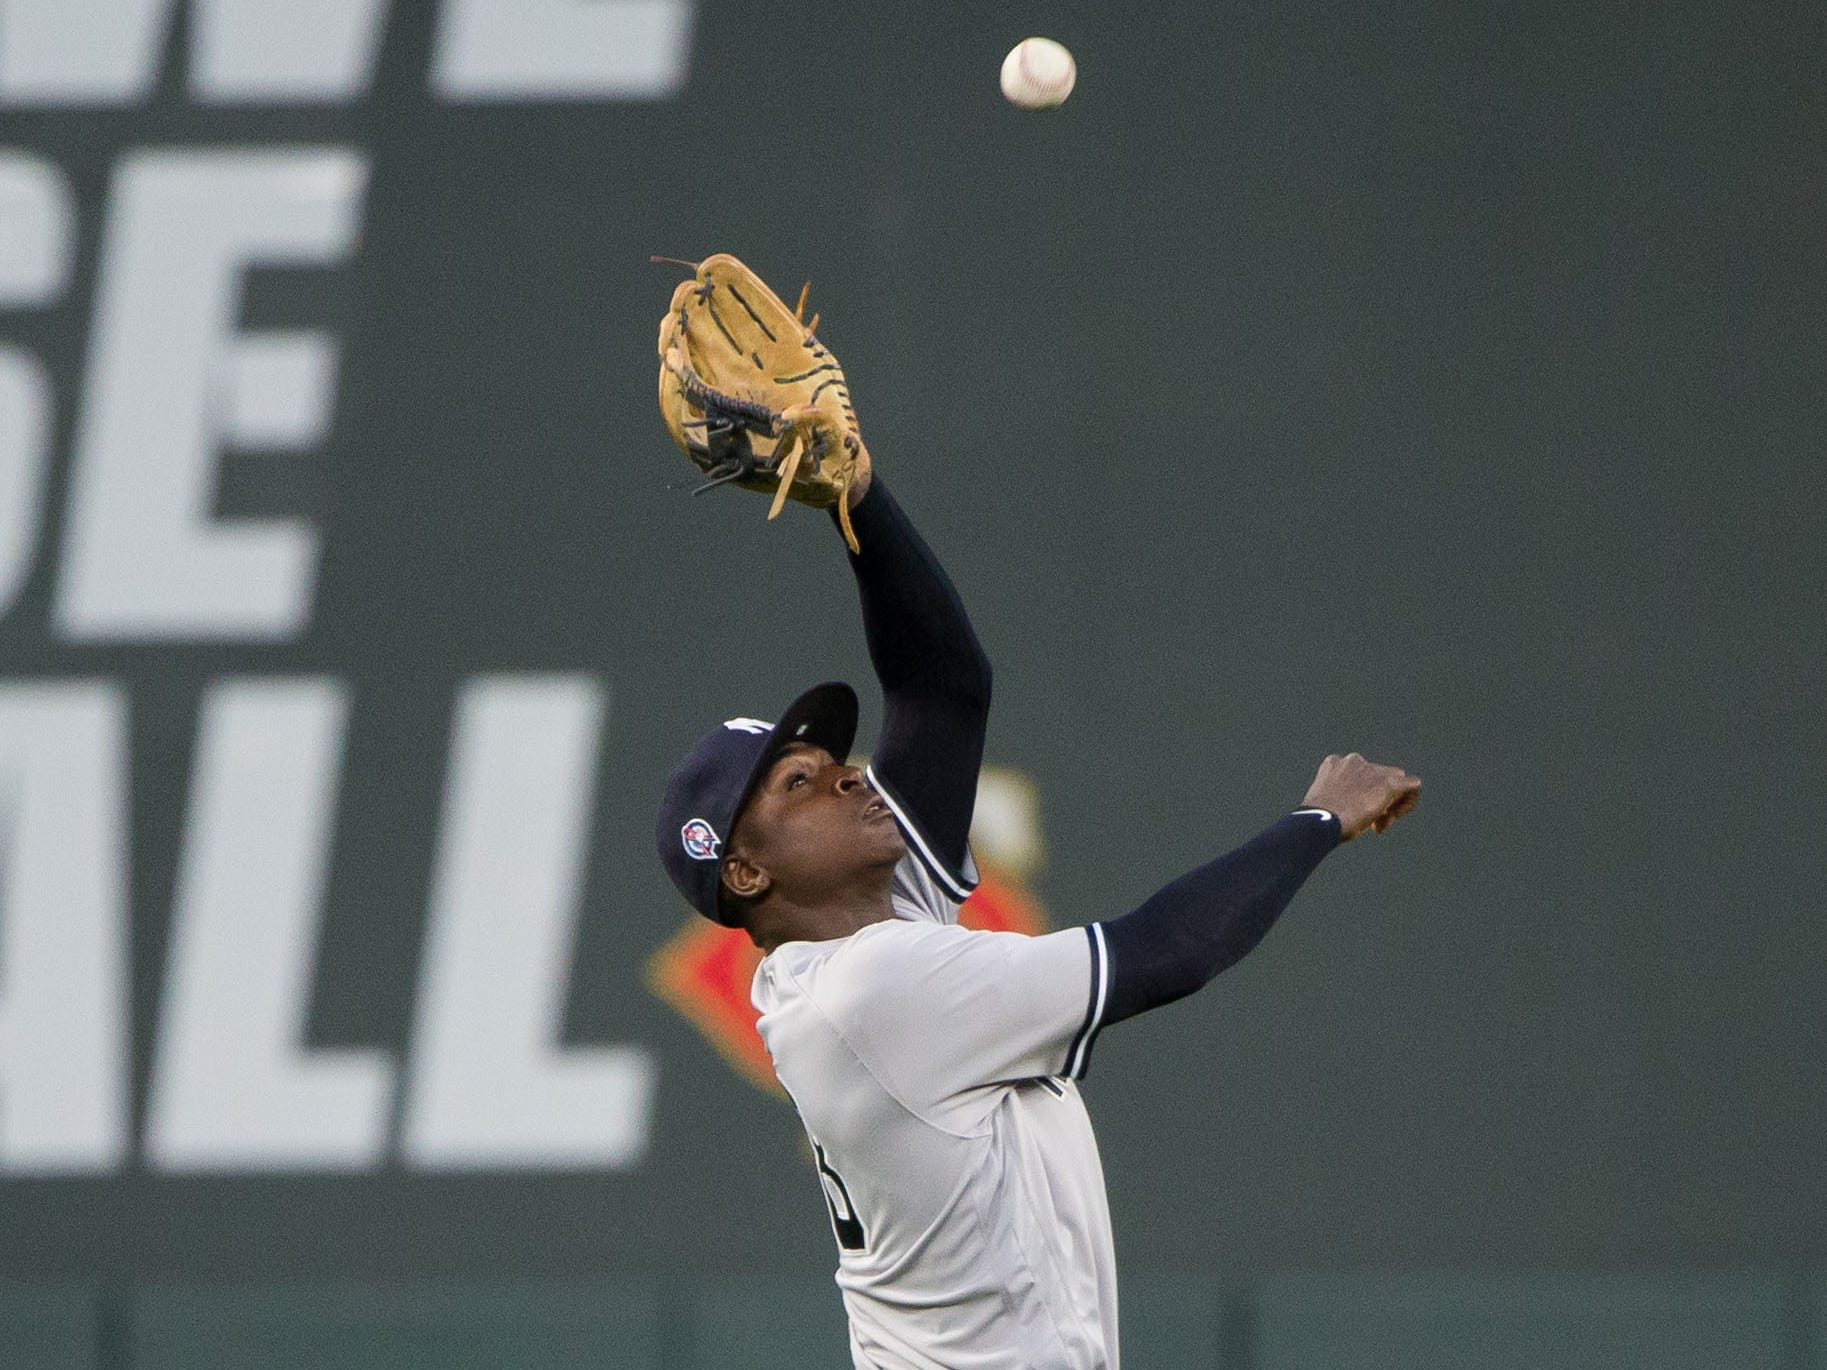 Sep 11, 2018; Minneapolis, MN, USA; New York Yankees shortstop Didi Gregorius (18) fields a fly ball in the first inning against Minnesota Twins at Target Field.